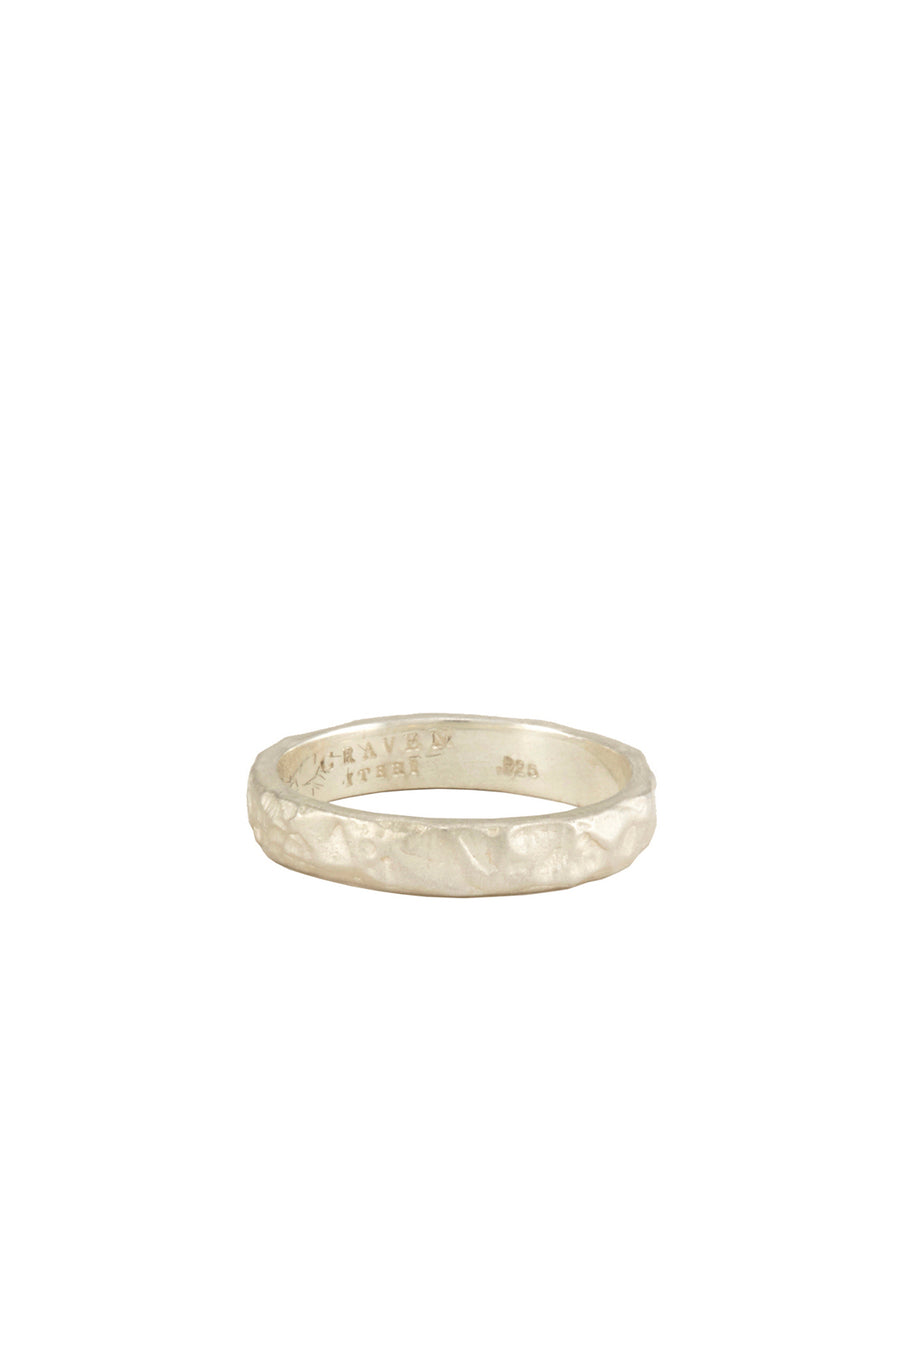 MARK ANTHONY RING STERLING SILVER